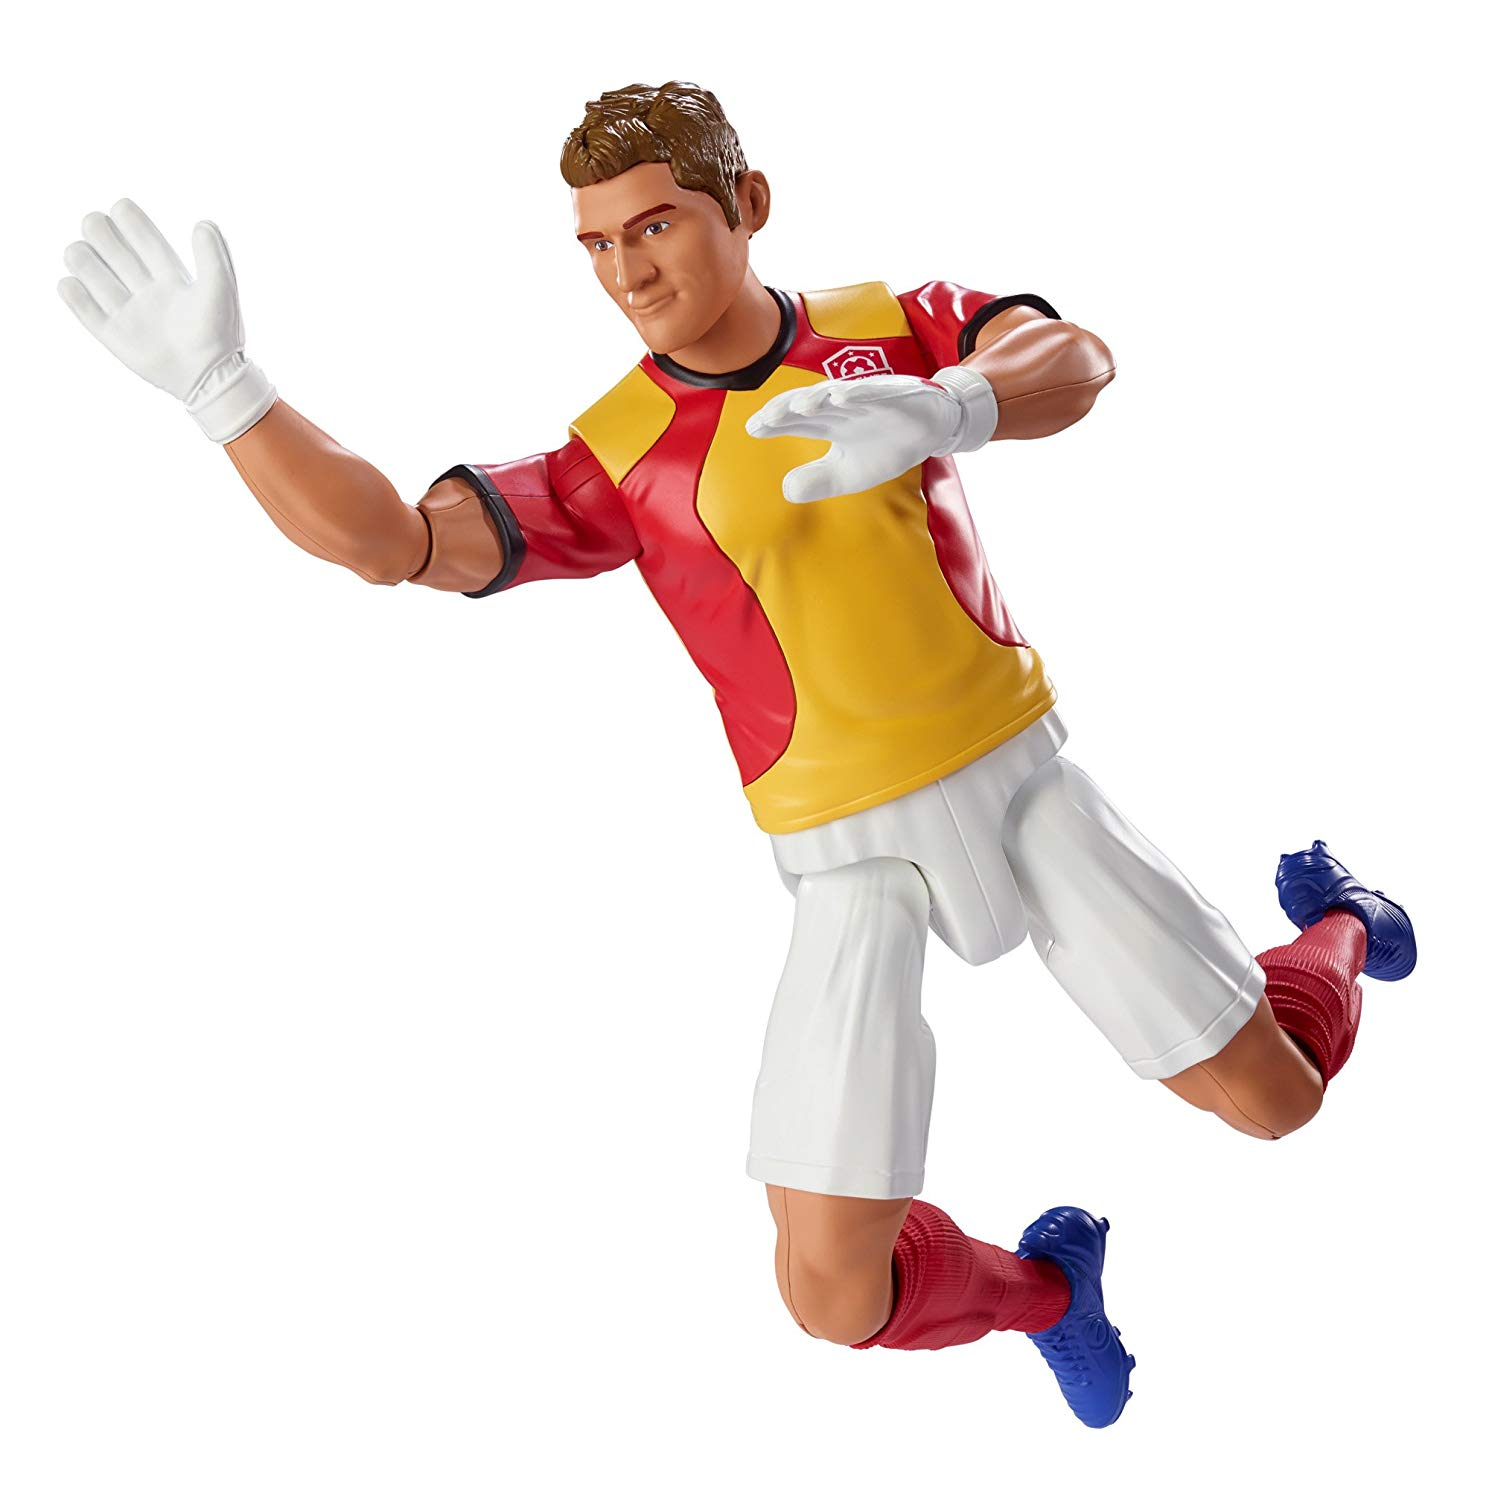 Iker Casillas Soccer Action Figure